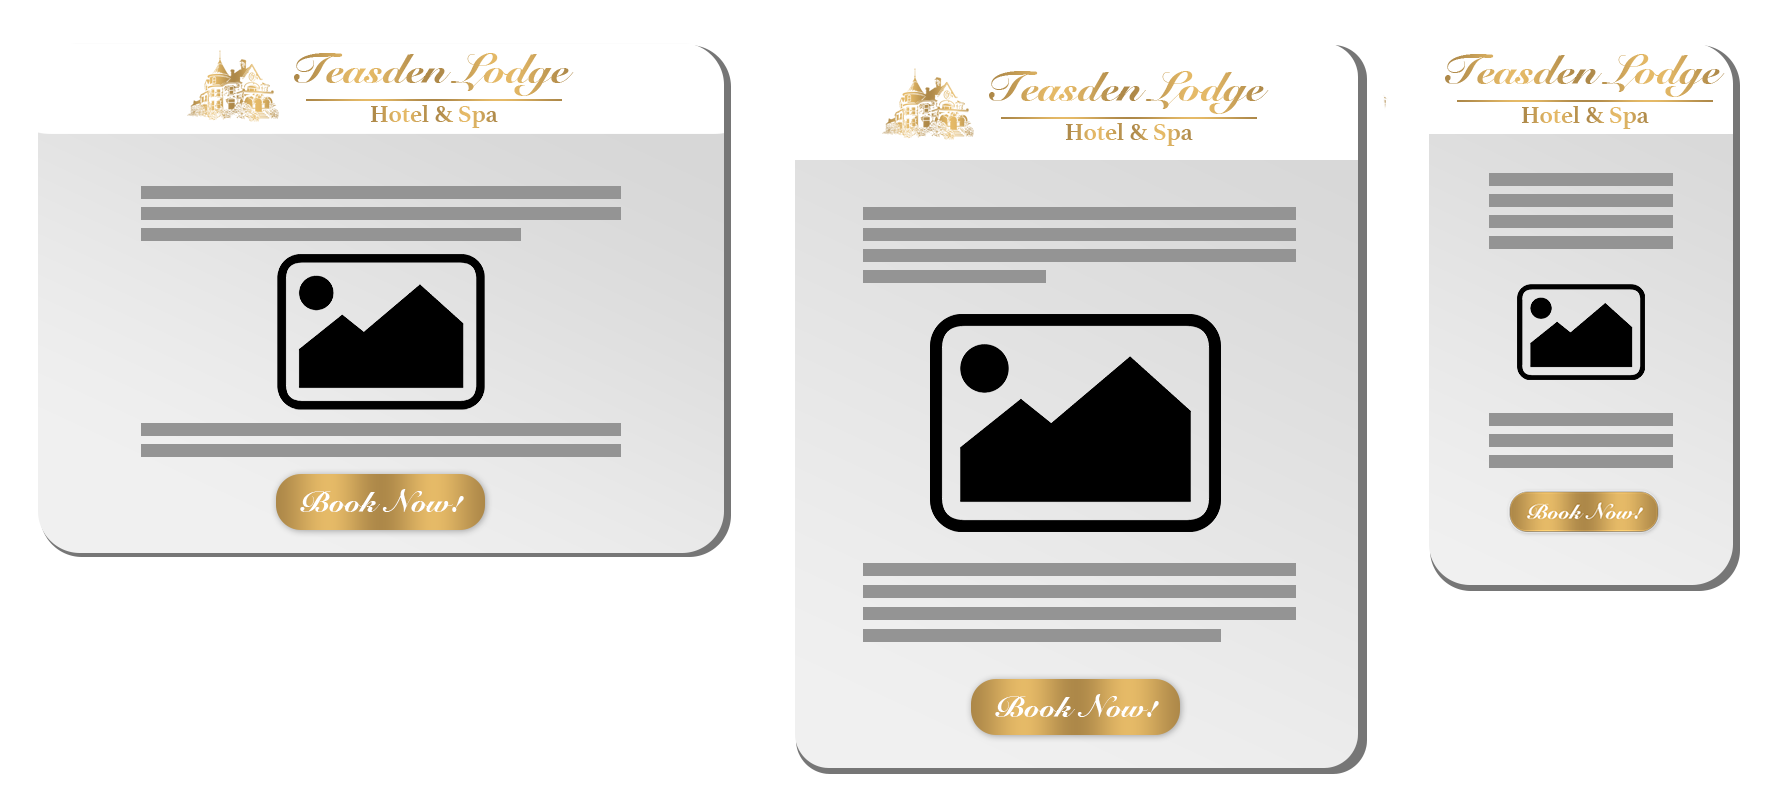 Emails will be viewed on all devices so a responsive template is a must.